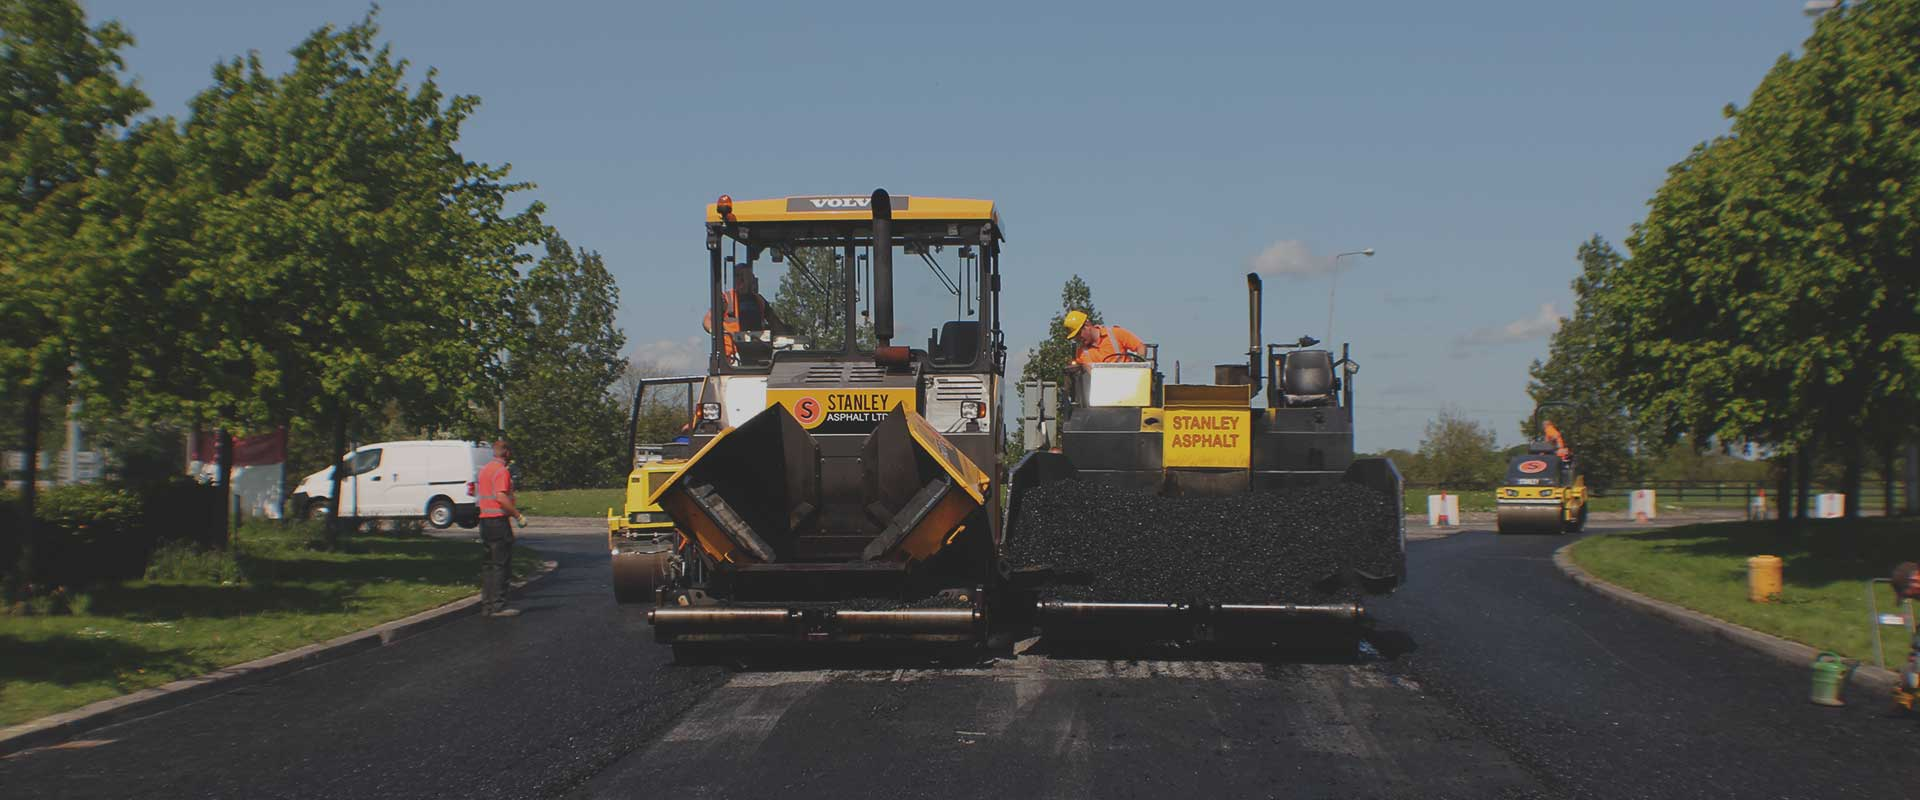 Stanley Asphalt - Asphalt & Macadam Surfacing